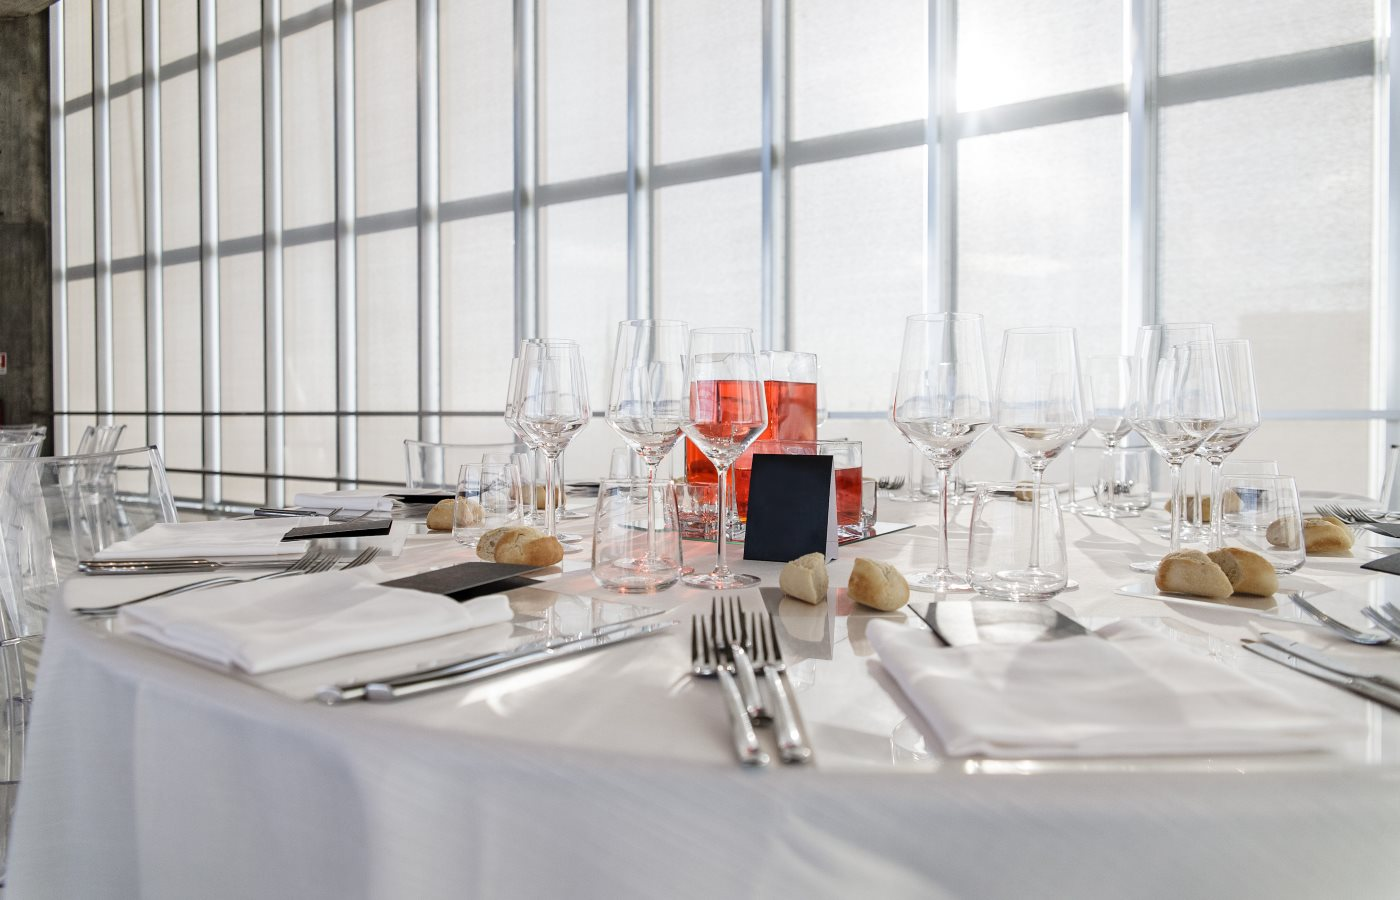 galleries with classic equipment for banqueting and catering